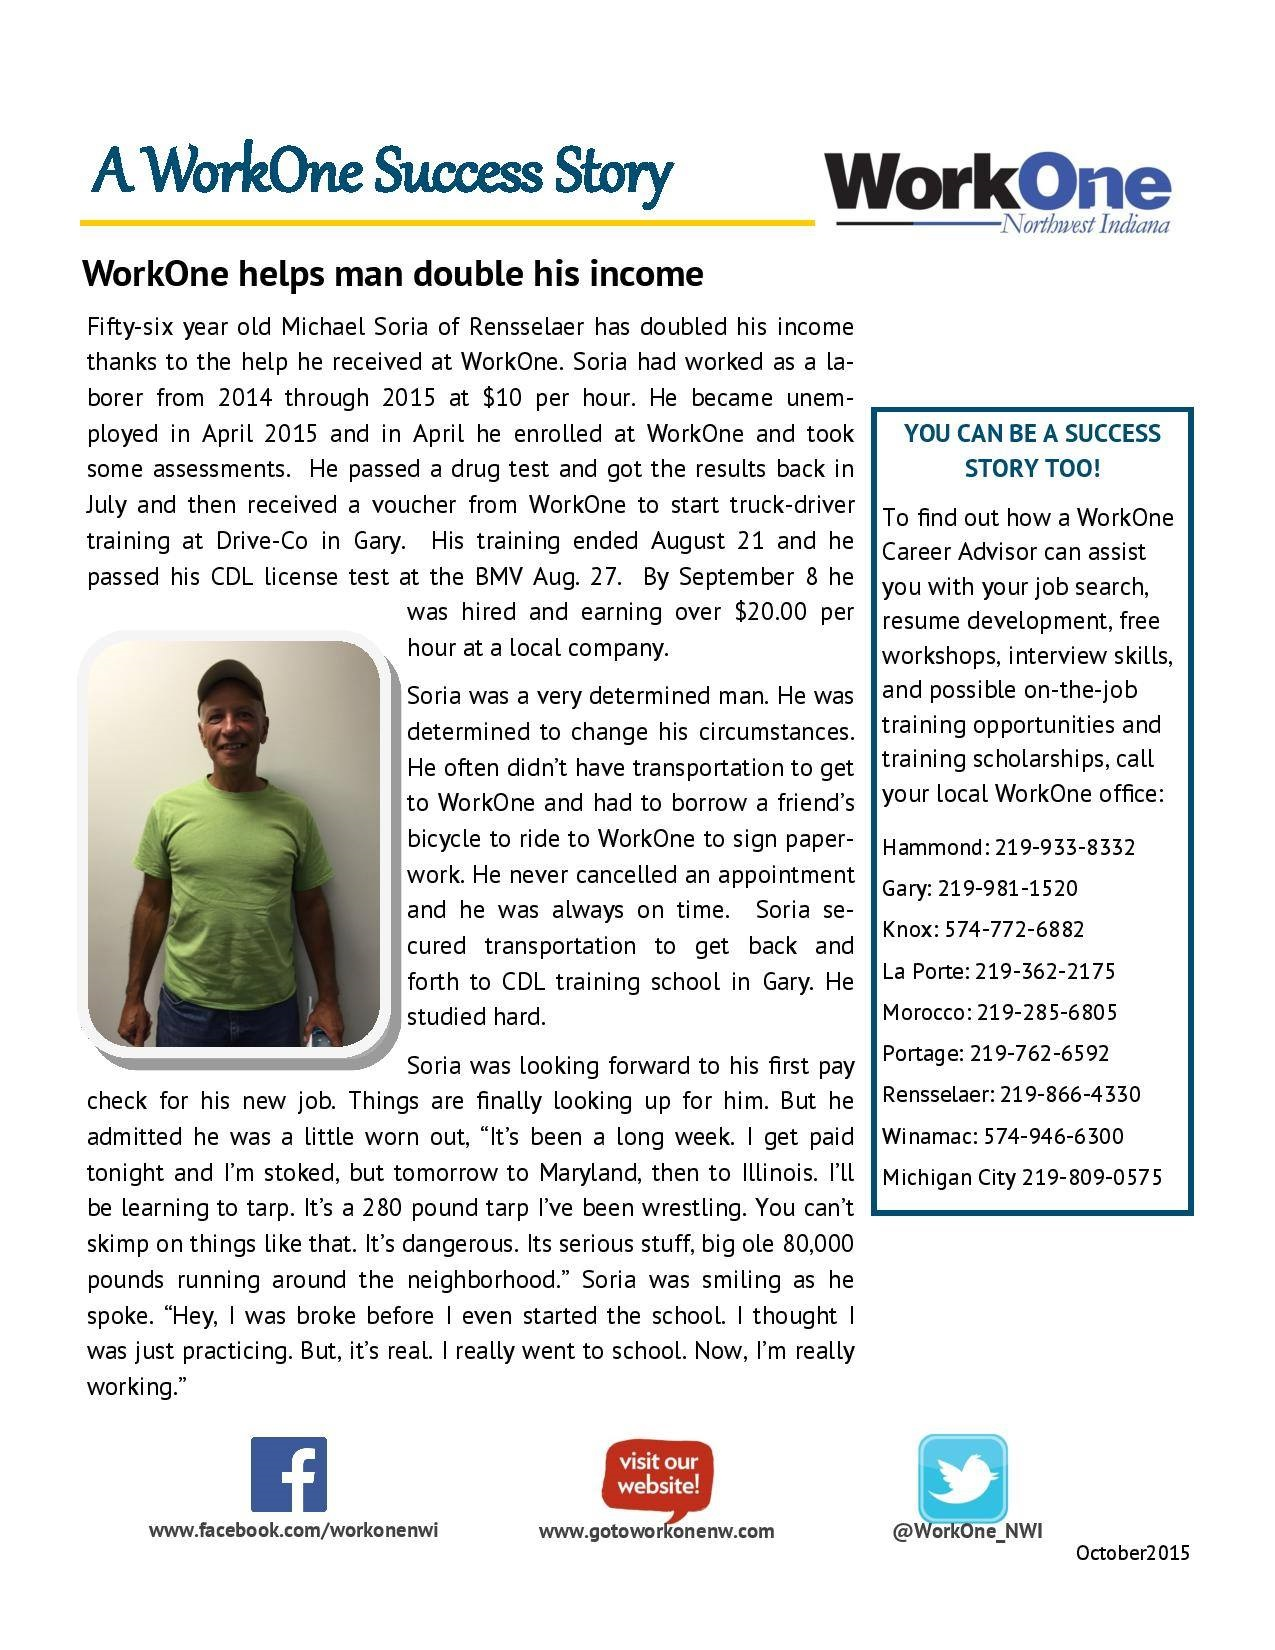 workone workone helps man double his income